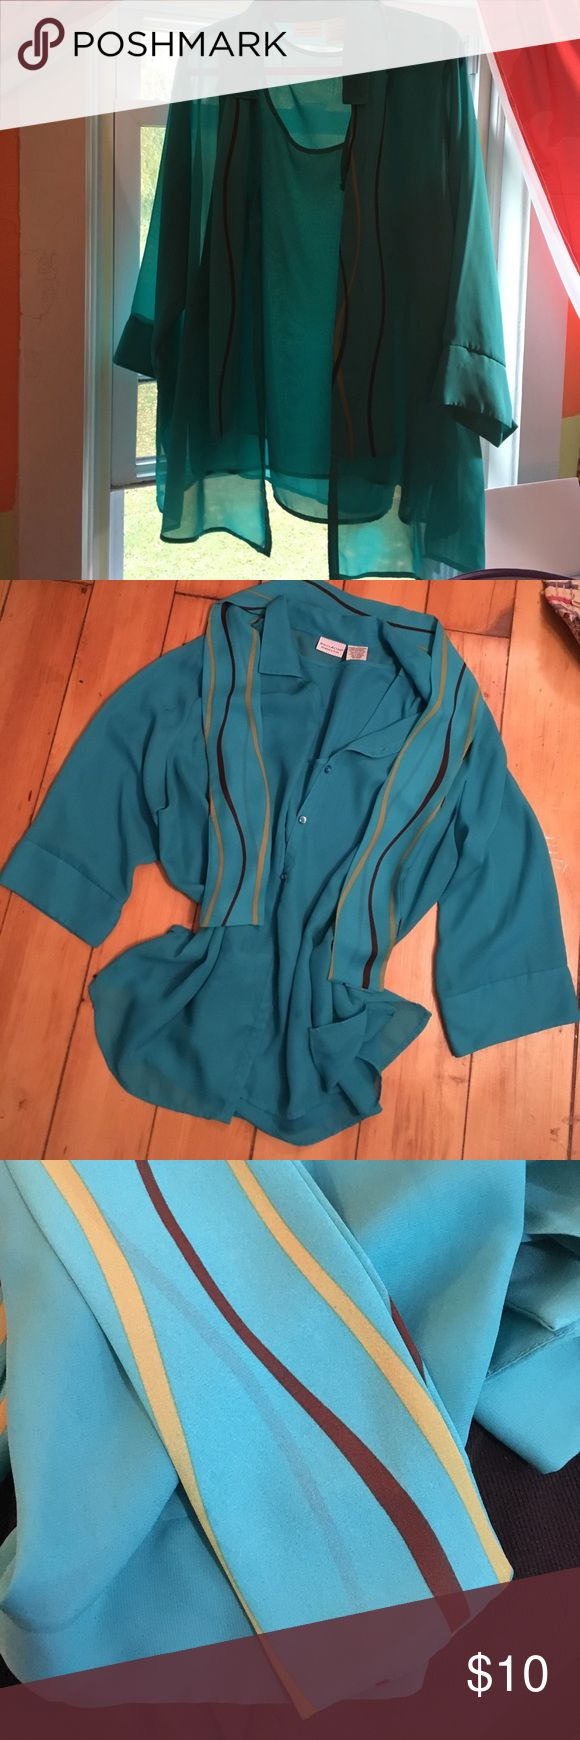 3Piece Plus Size Blouse Sleeveless blouse with over blouse and sash/tie. Teal color, worn very little. Easy care machine wash cold hang to dry or dryer low. 100% polyester. Great for travel! White Stag Tops Blouses